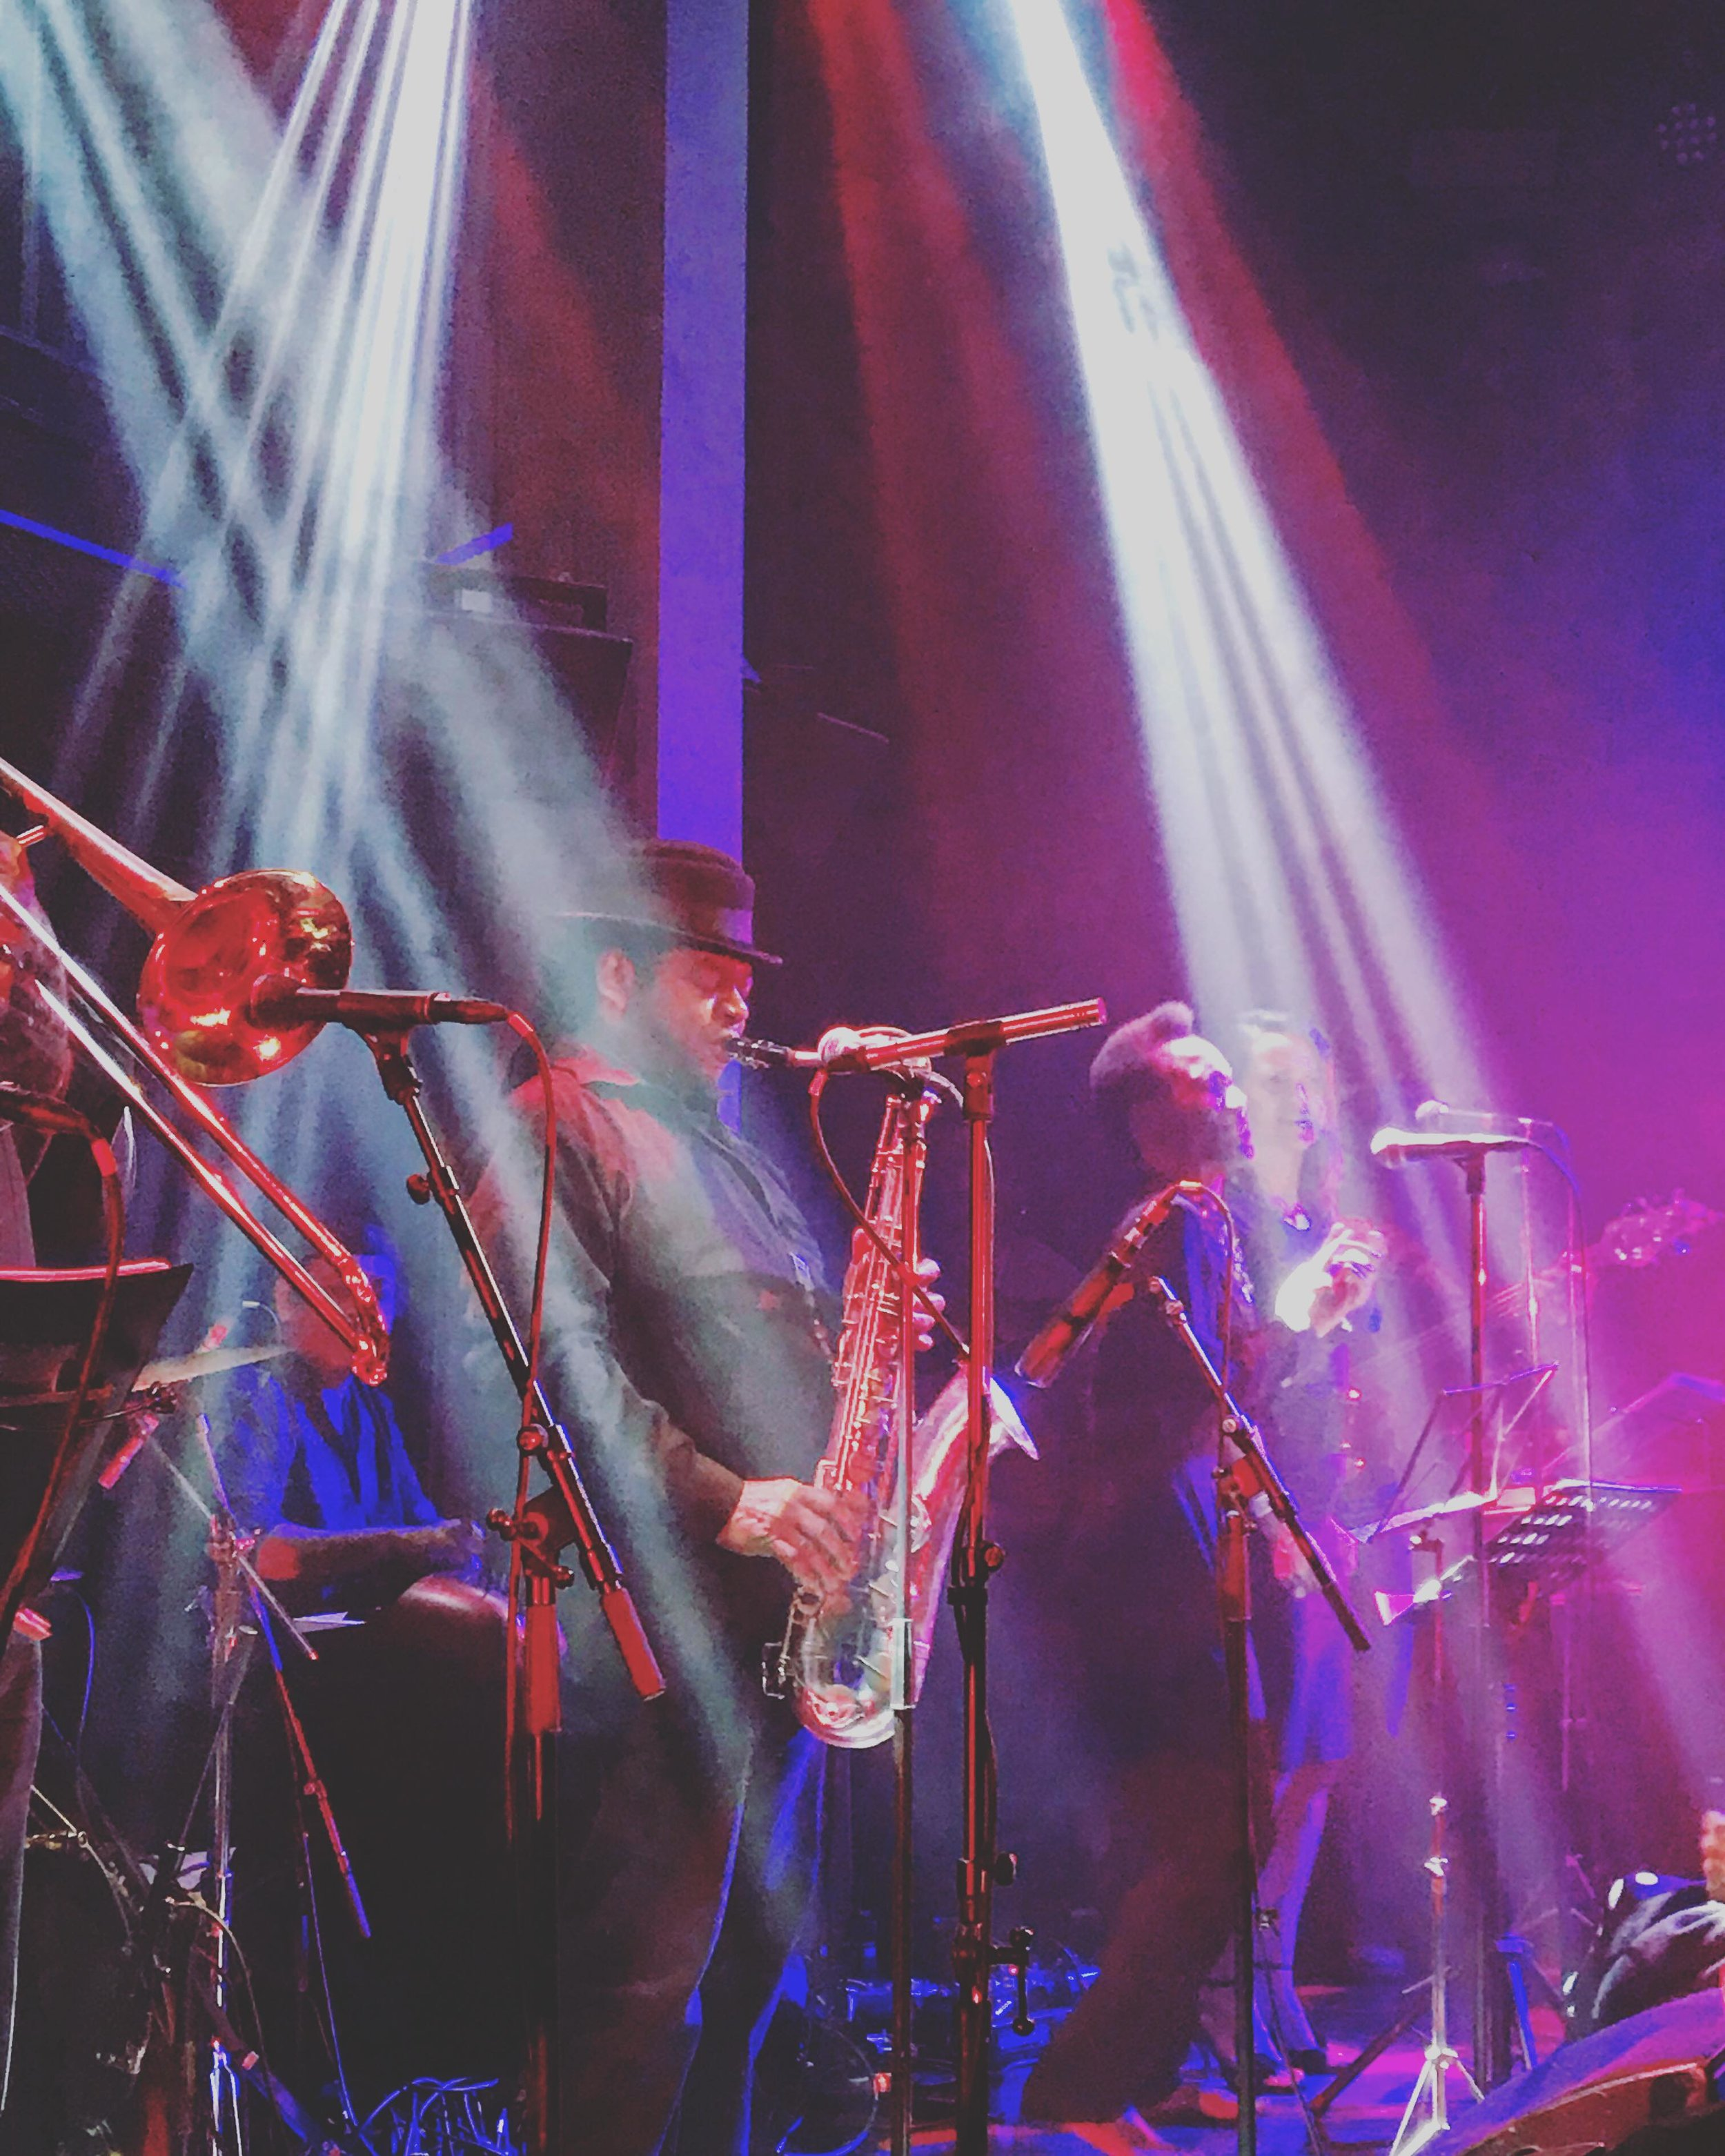 Bukky Leo Live at the Jazz Cafe 19.03.18 Photo by Sophie Darling